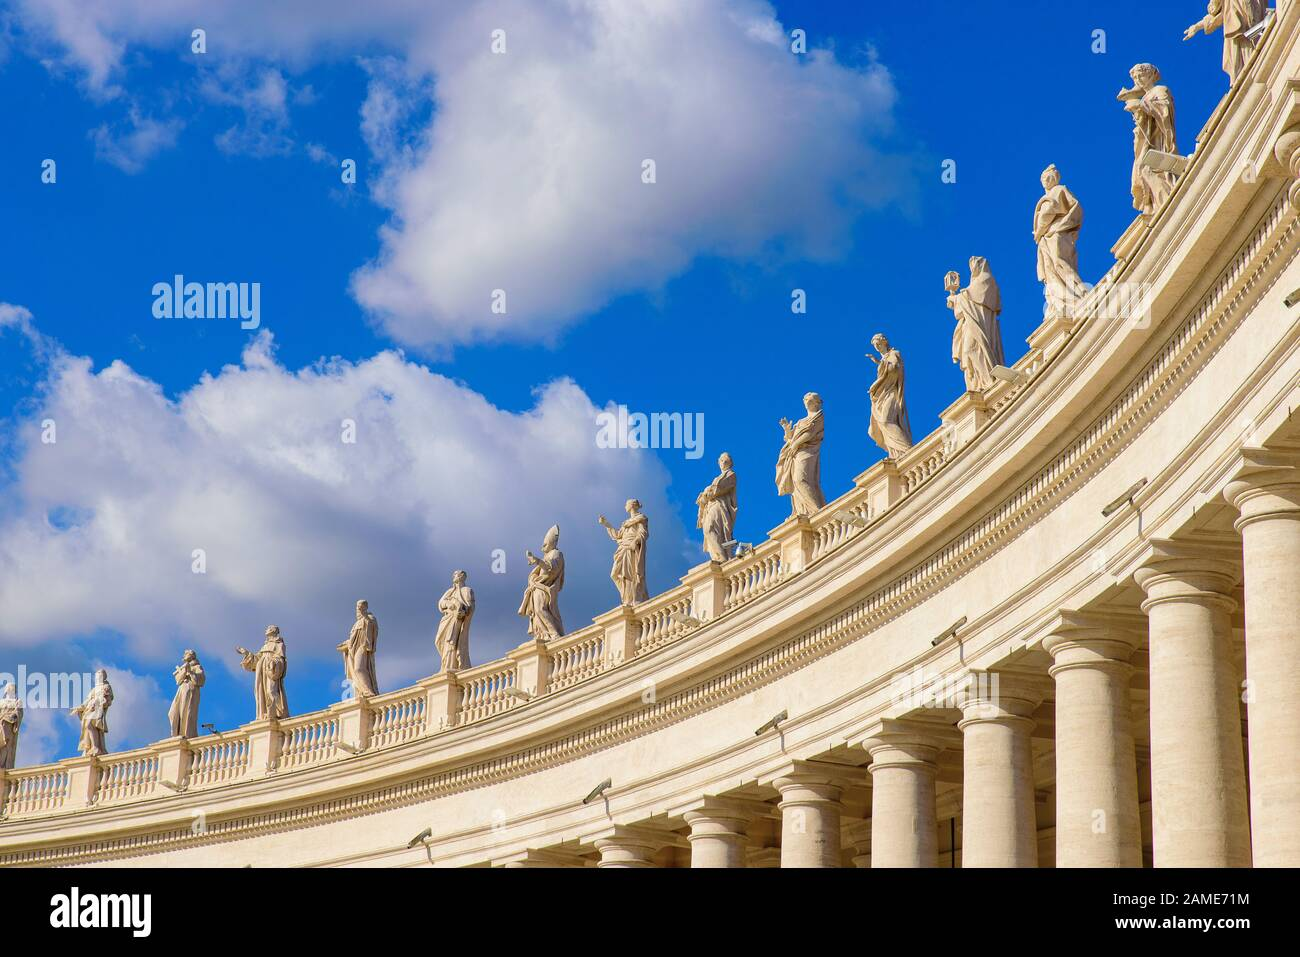 Colonnades at St. Peter's Square in Vatican City Stock Photo